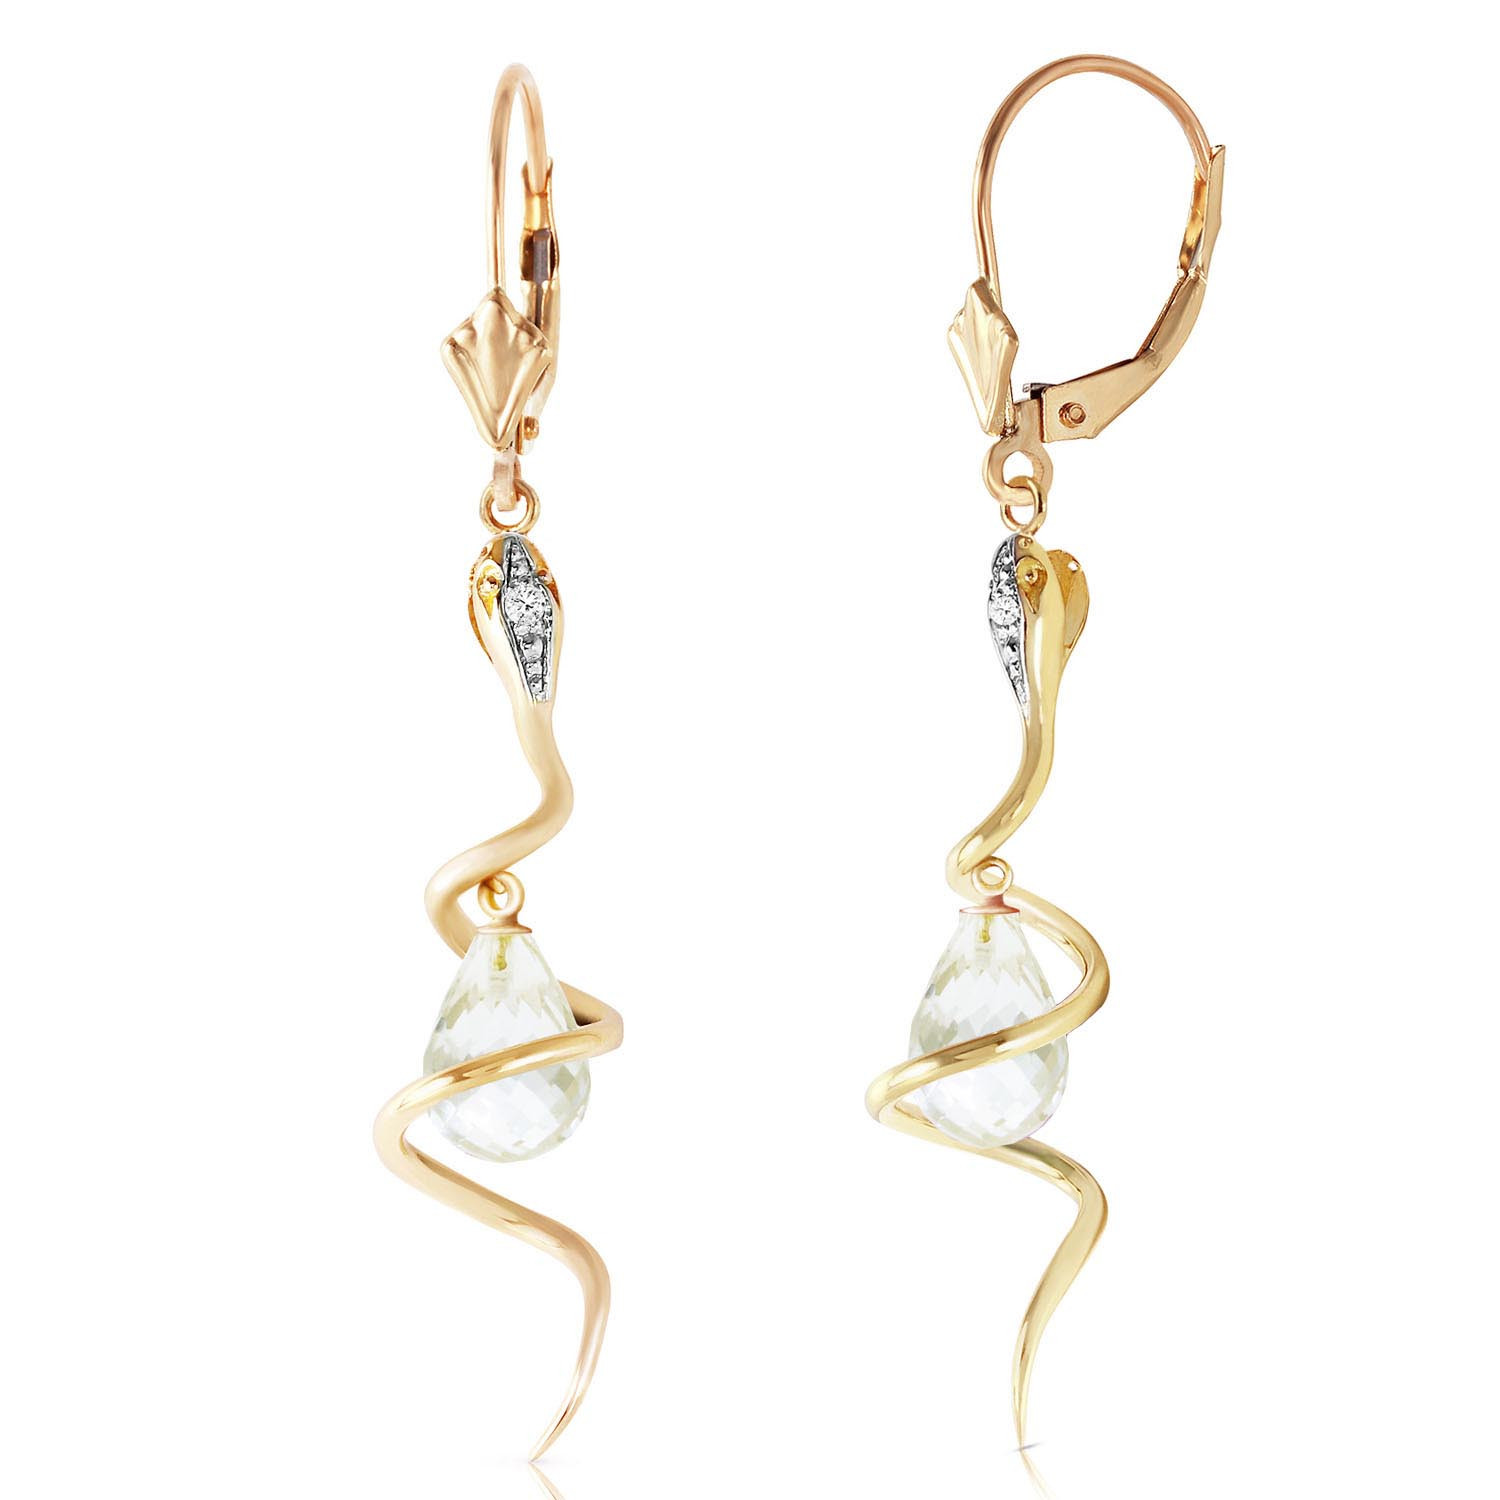 White Topaz & Diamond Serpent Earrings in 9ct Gold